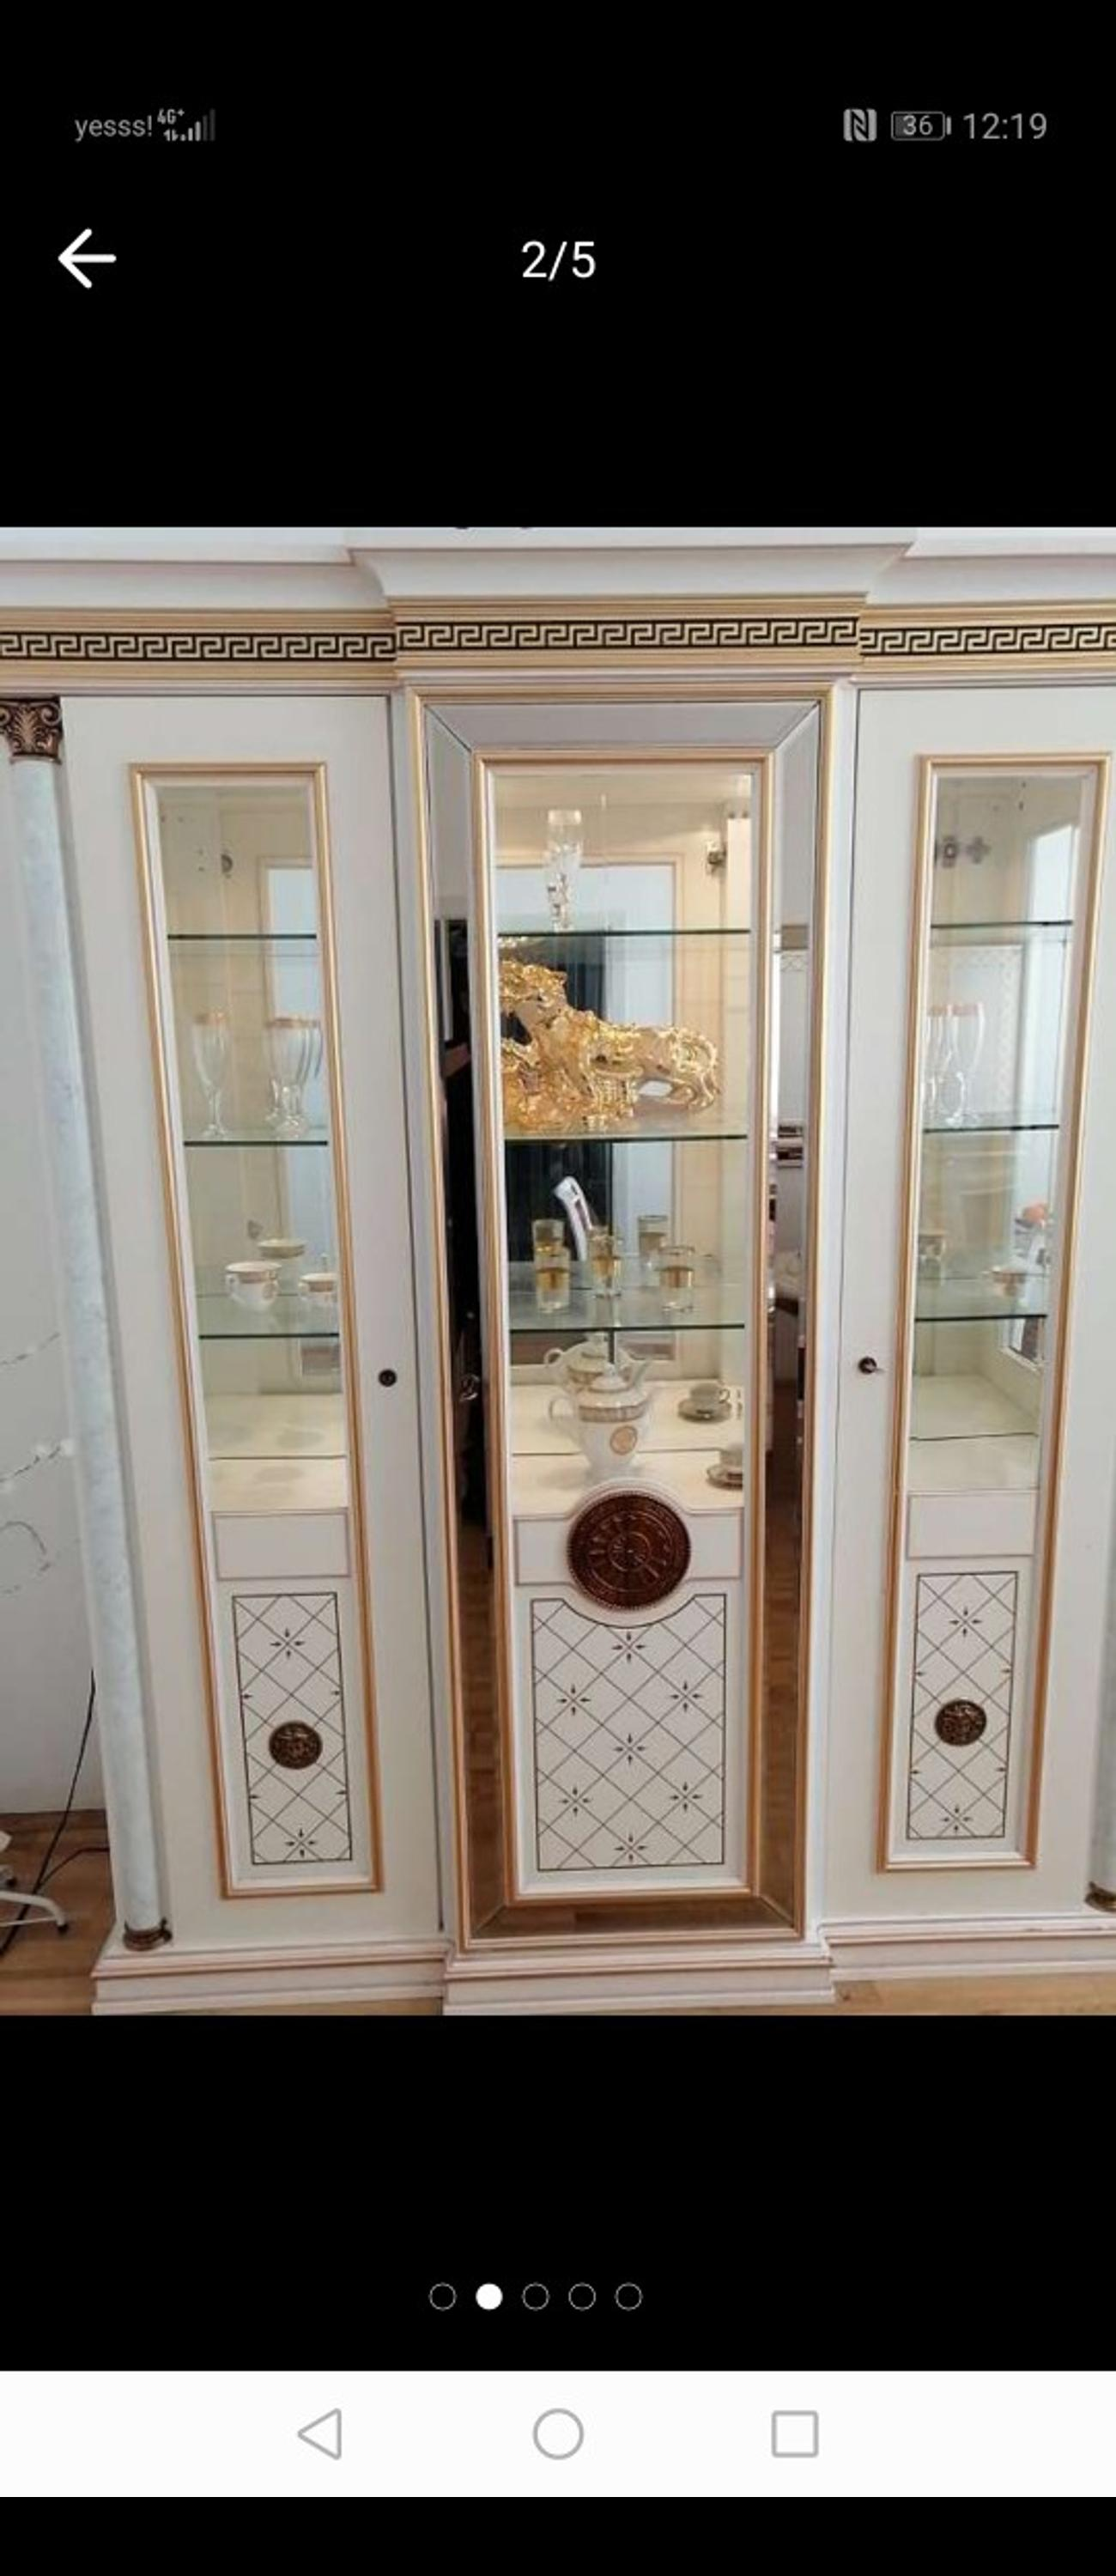 Versace Wohnzimmer in 220 Wien for €20,20.20 for sale  Shpock